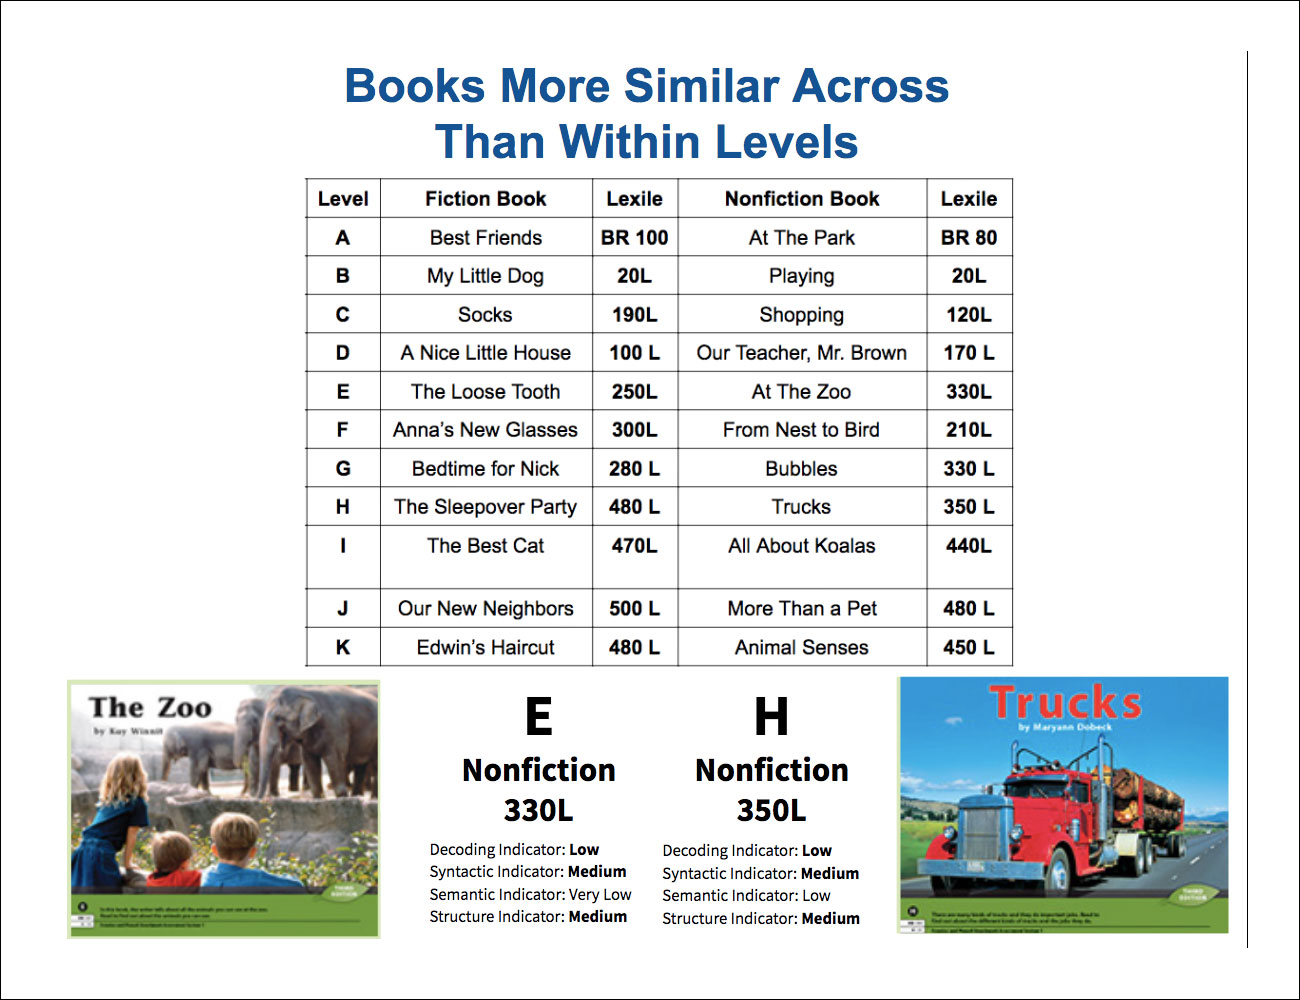 Books more similar across reading levels than within